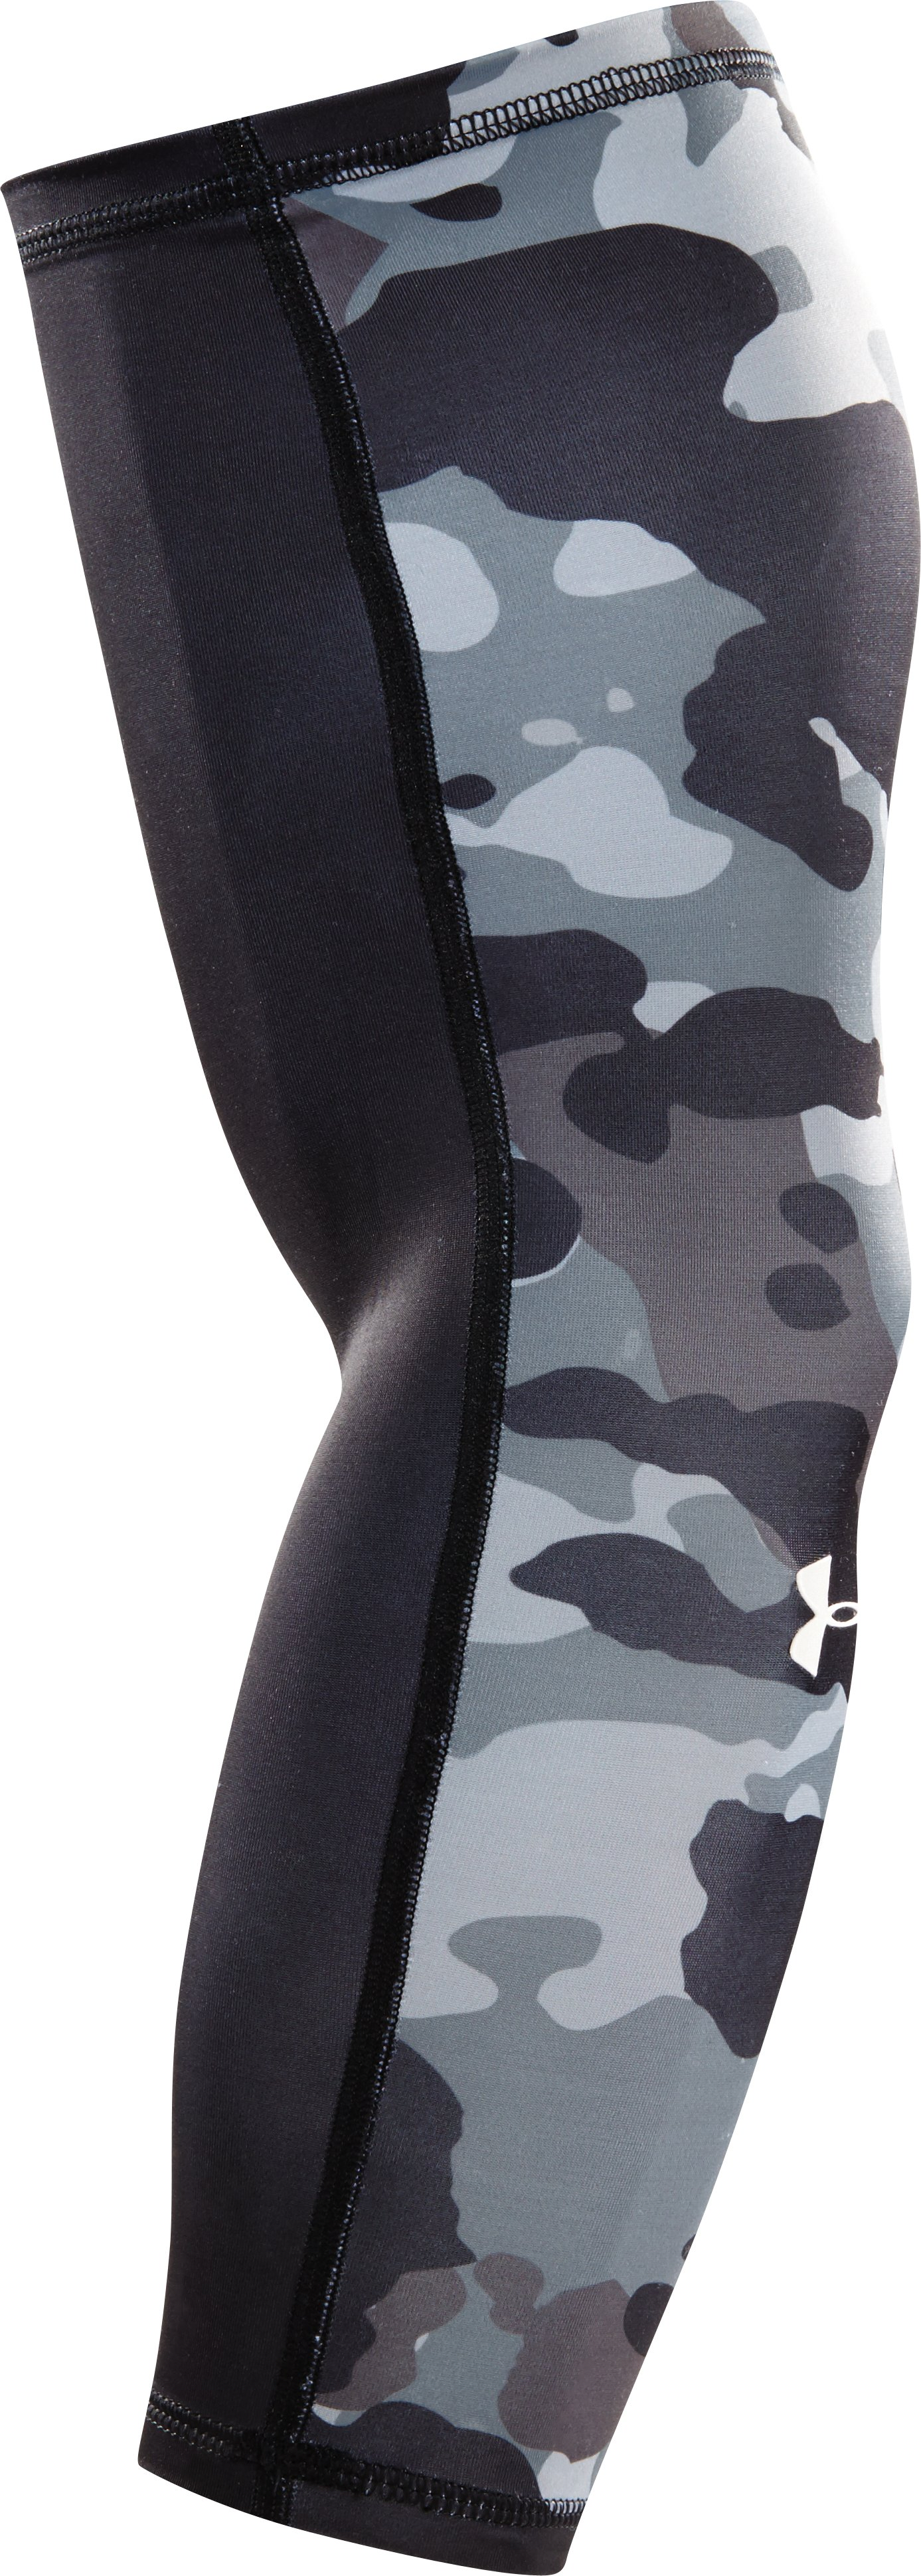 UA Renegade Shooter Sleeve, Black